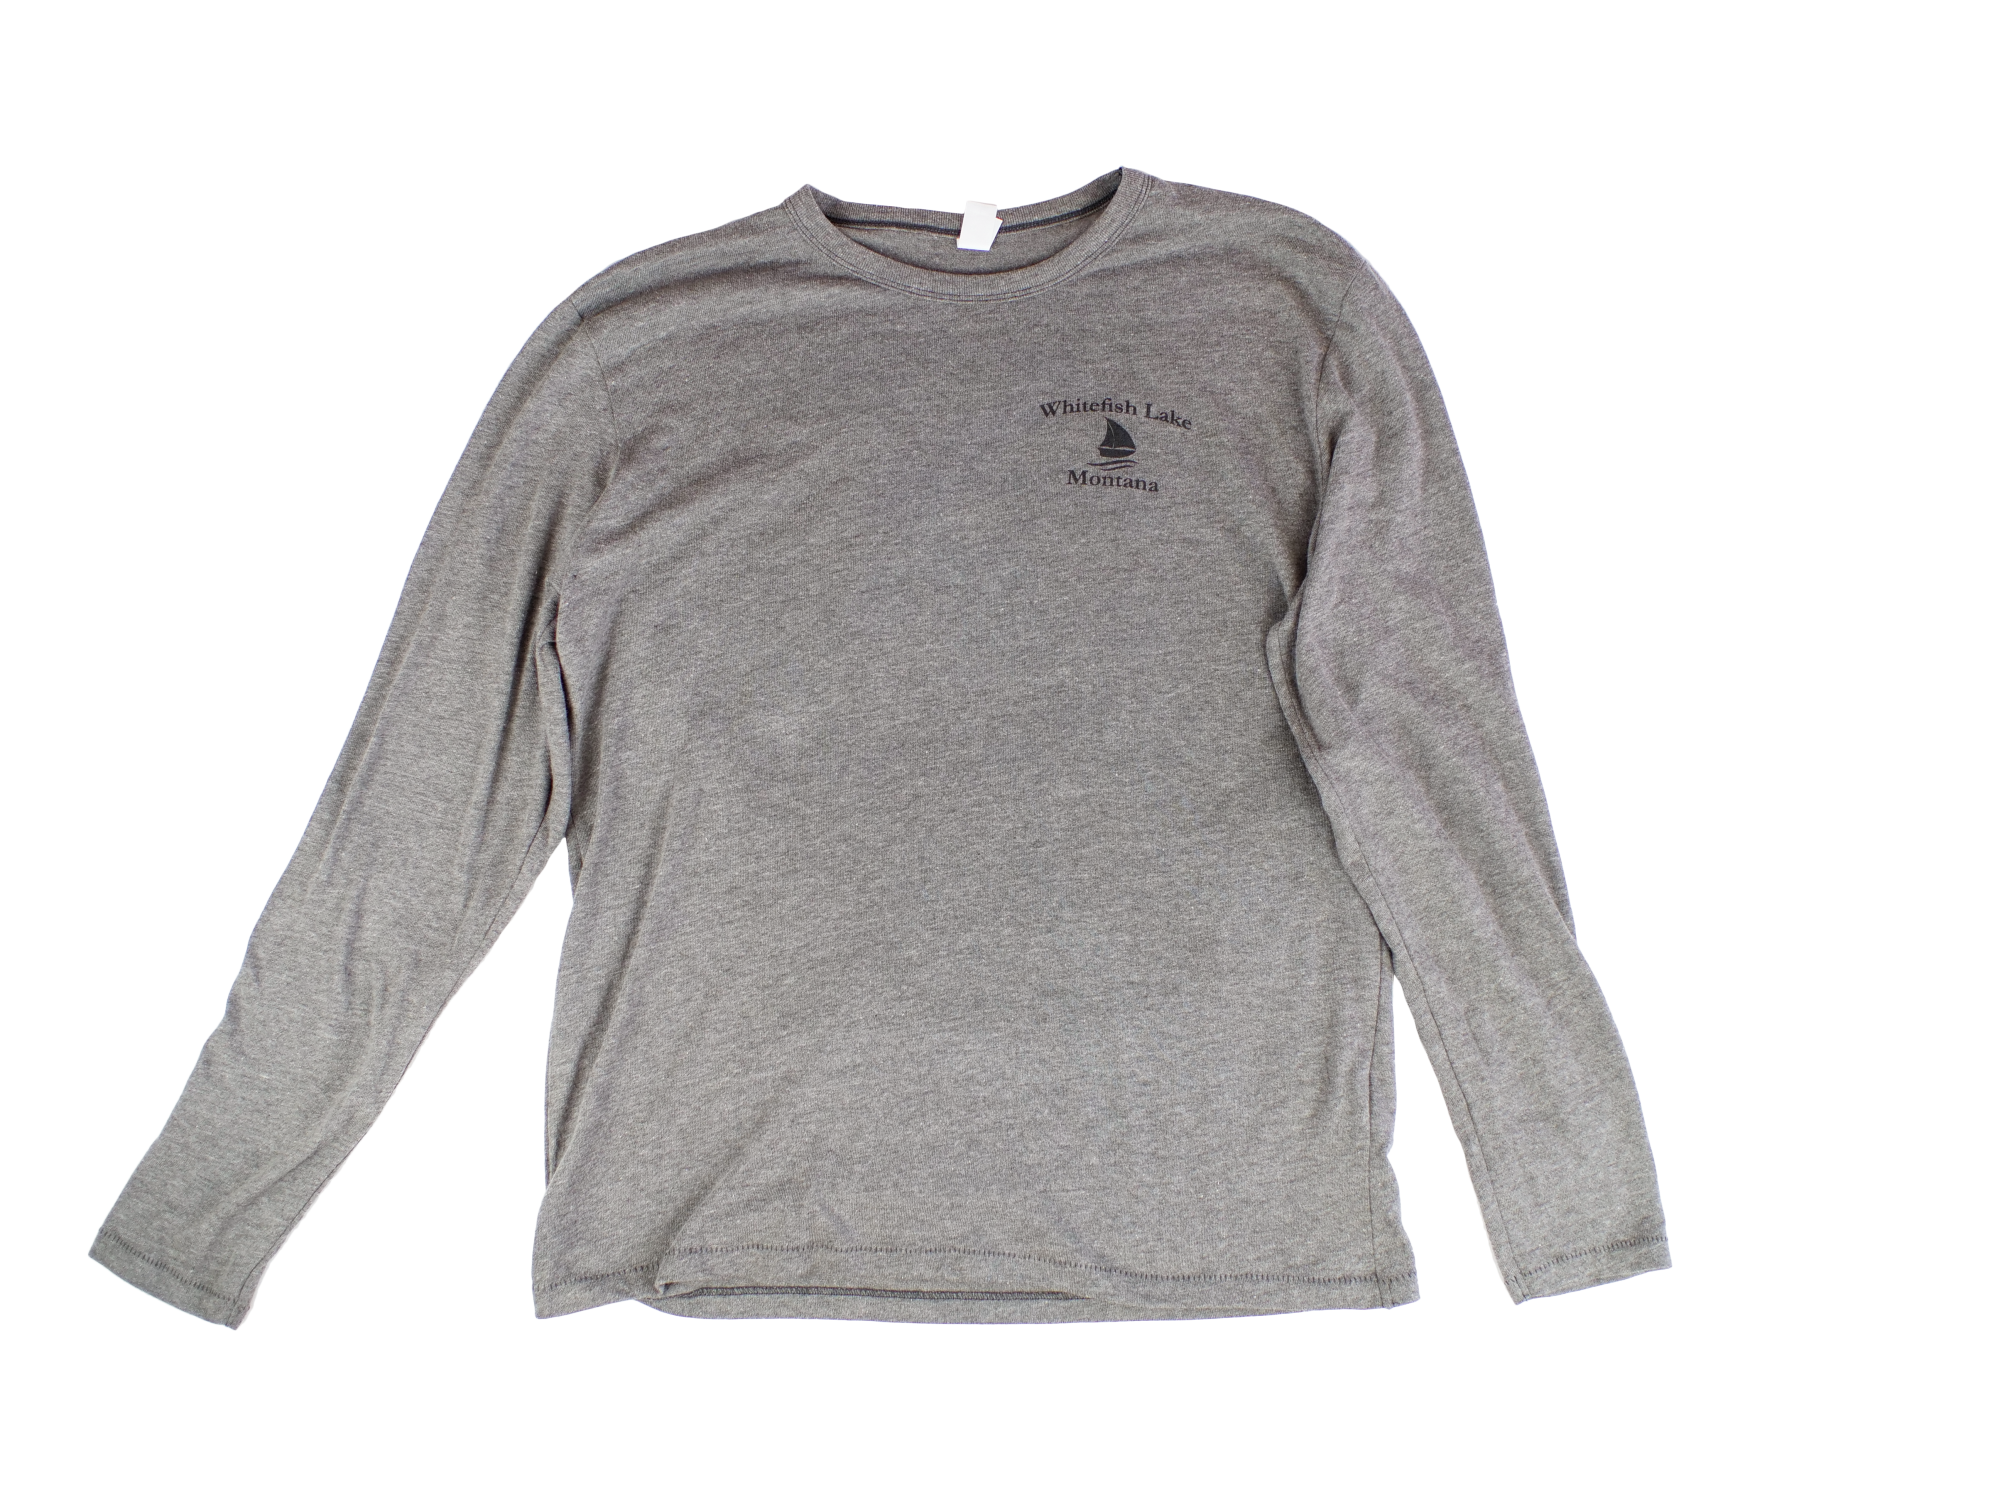 Whitefish Lake Long Sleeve Grey